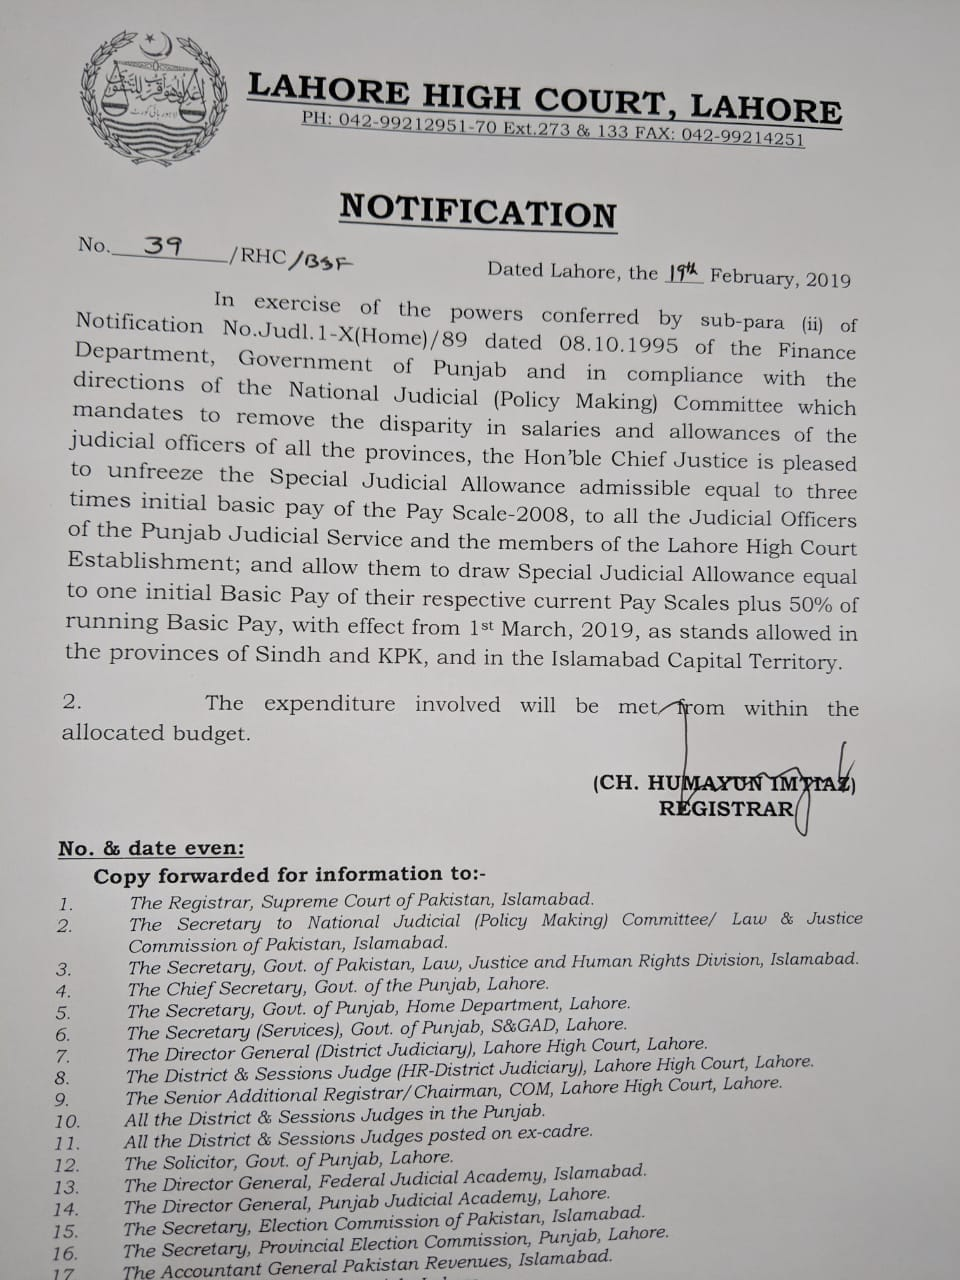 Notification of Unfreez Special Judicial Allowance Admissible Equal to Three Times Initial Basic Pay